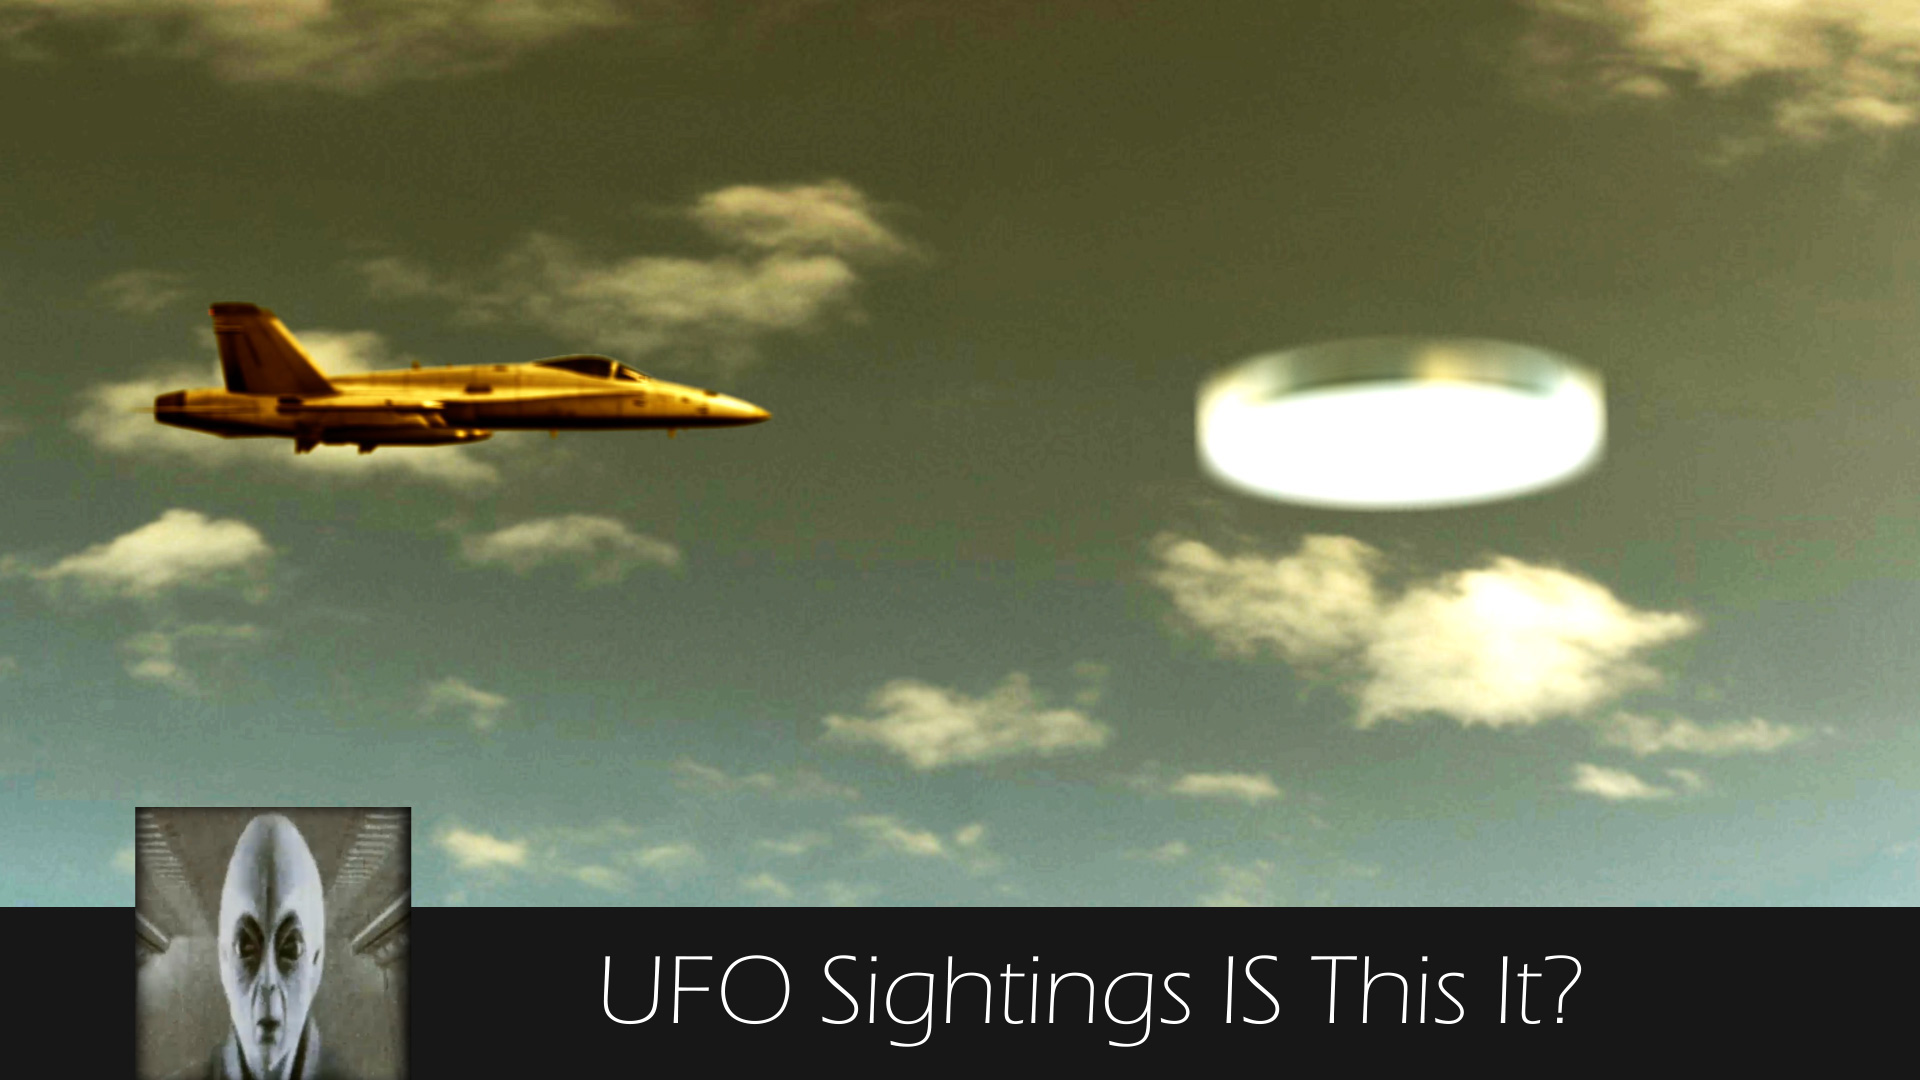 UFO Sightings Is This It April 27th 2017 | iufosightings